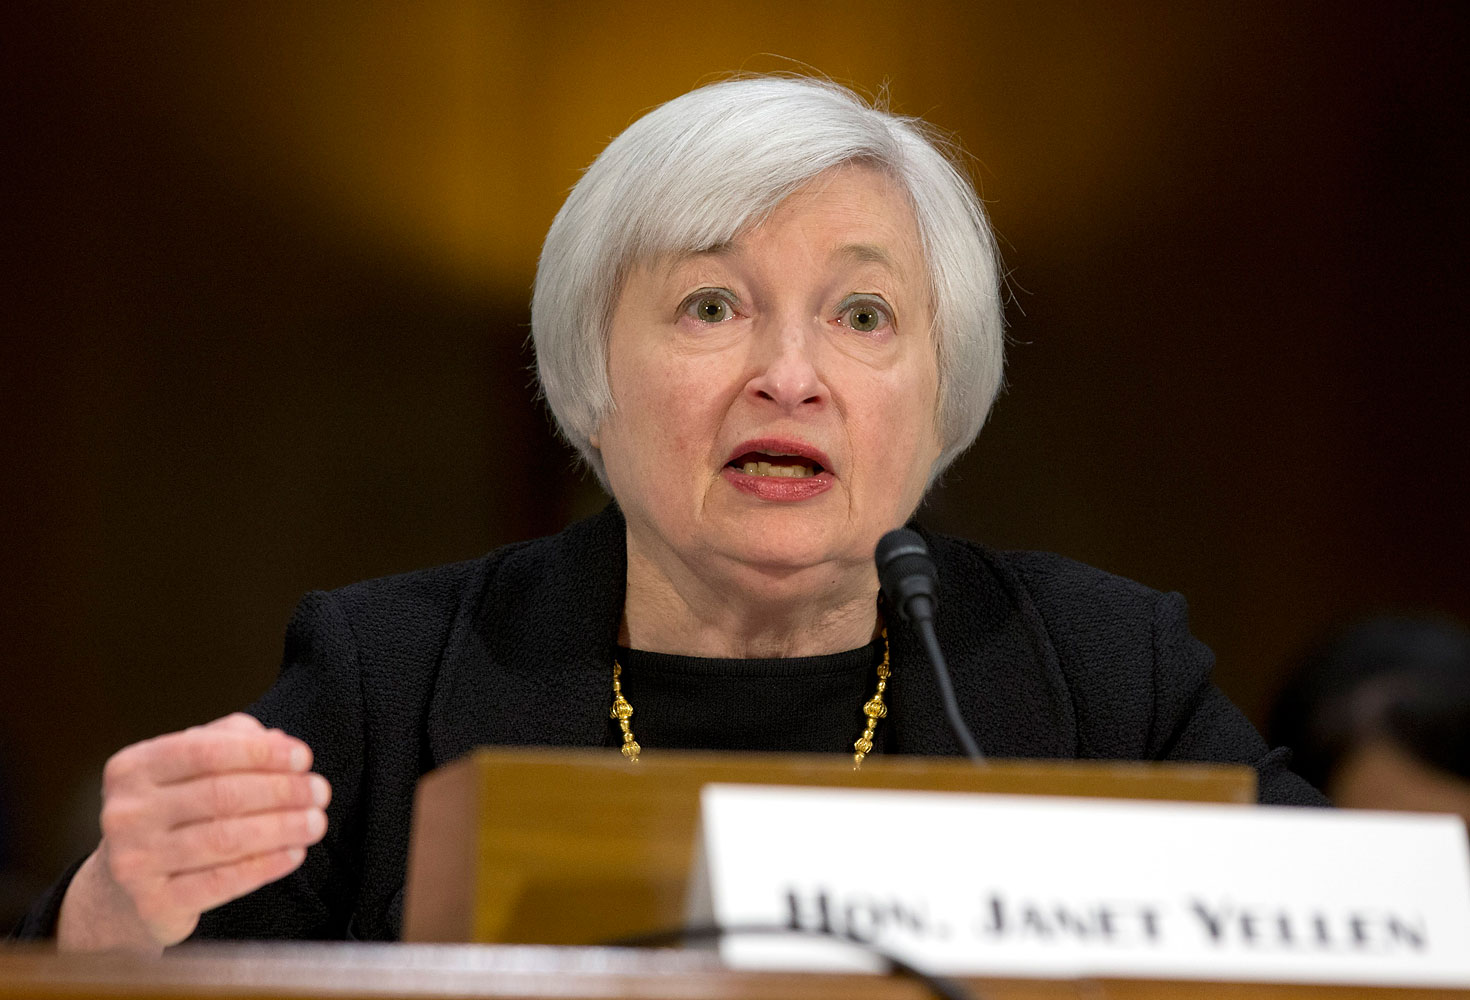 Janet Yellen testifying on Capitol Hill in Washington before the Senate Banking Committee, Nov. 14, 2013..